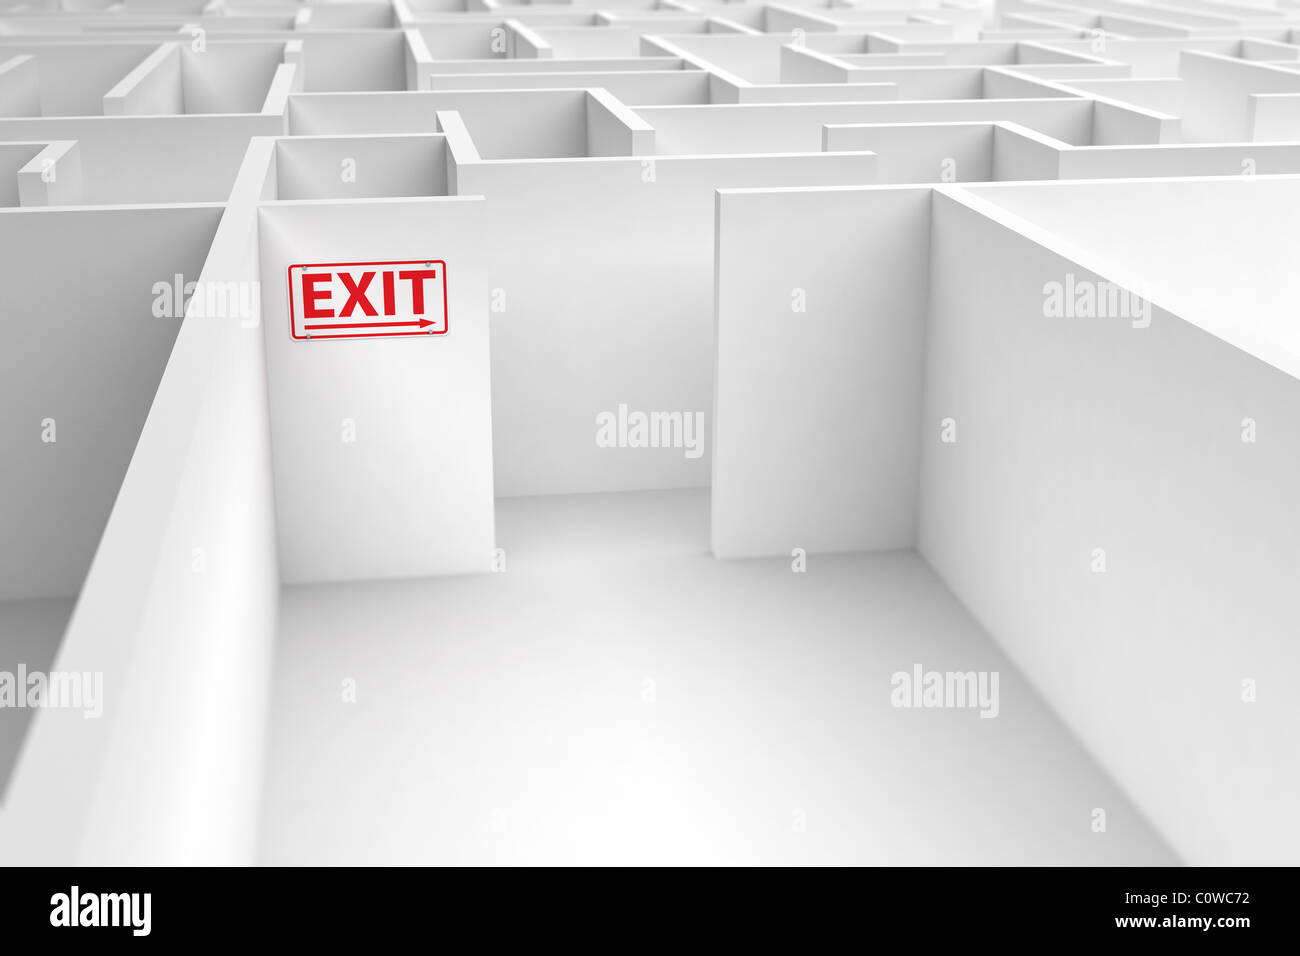 Exit strategy - Stock Image